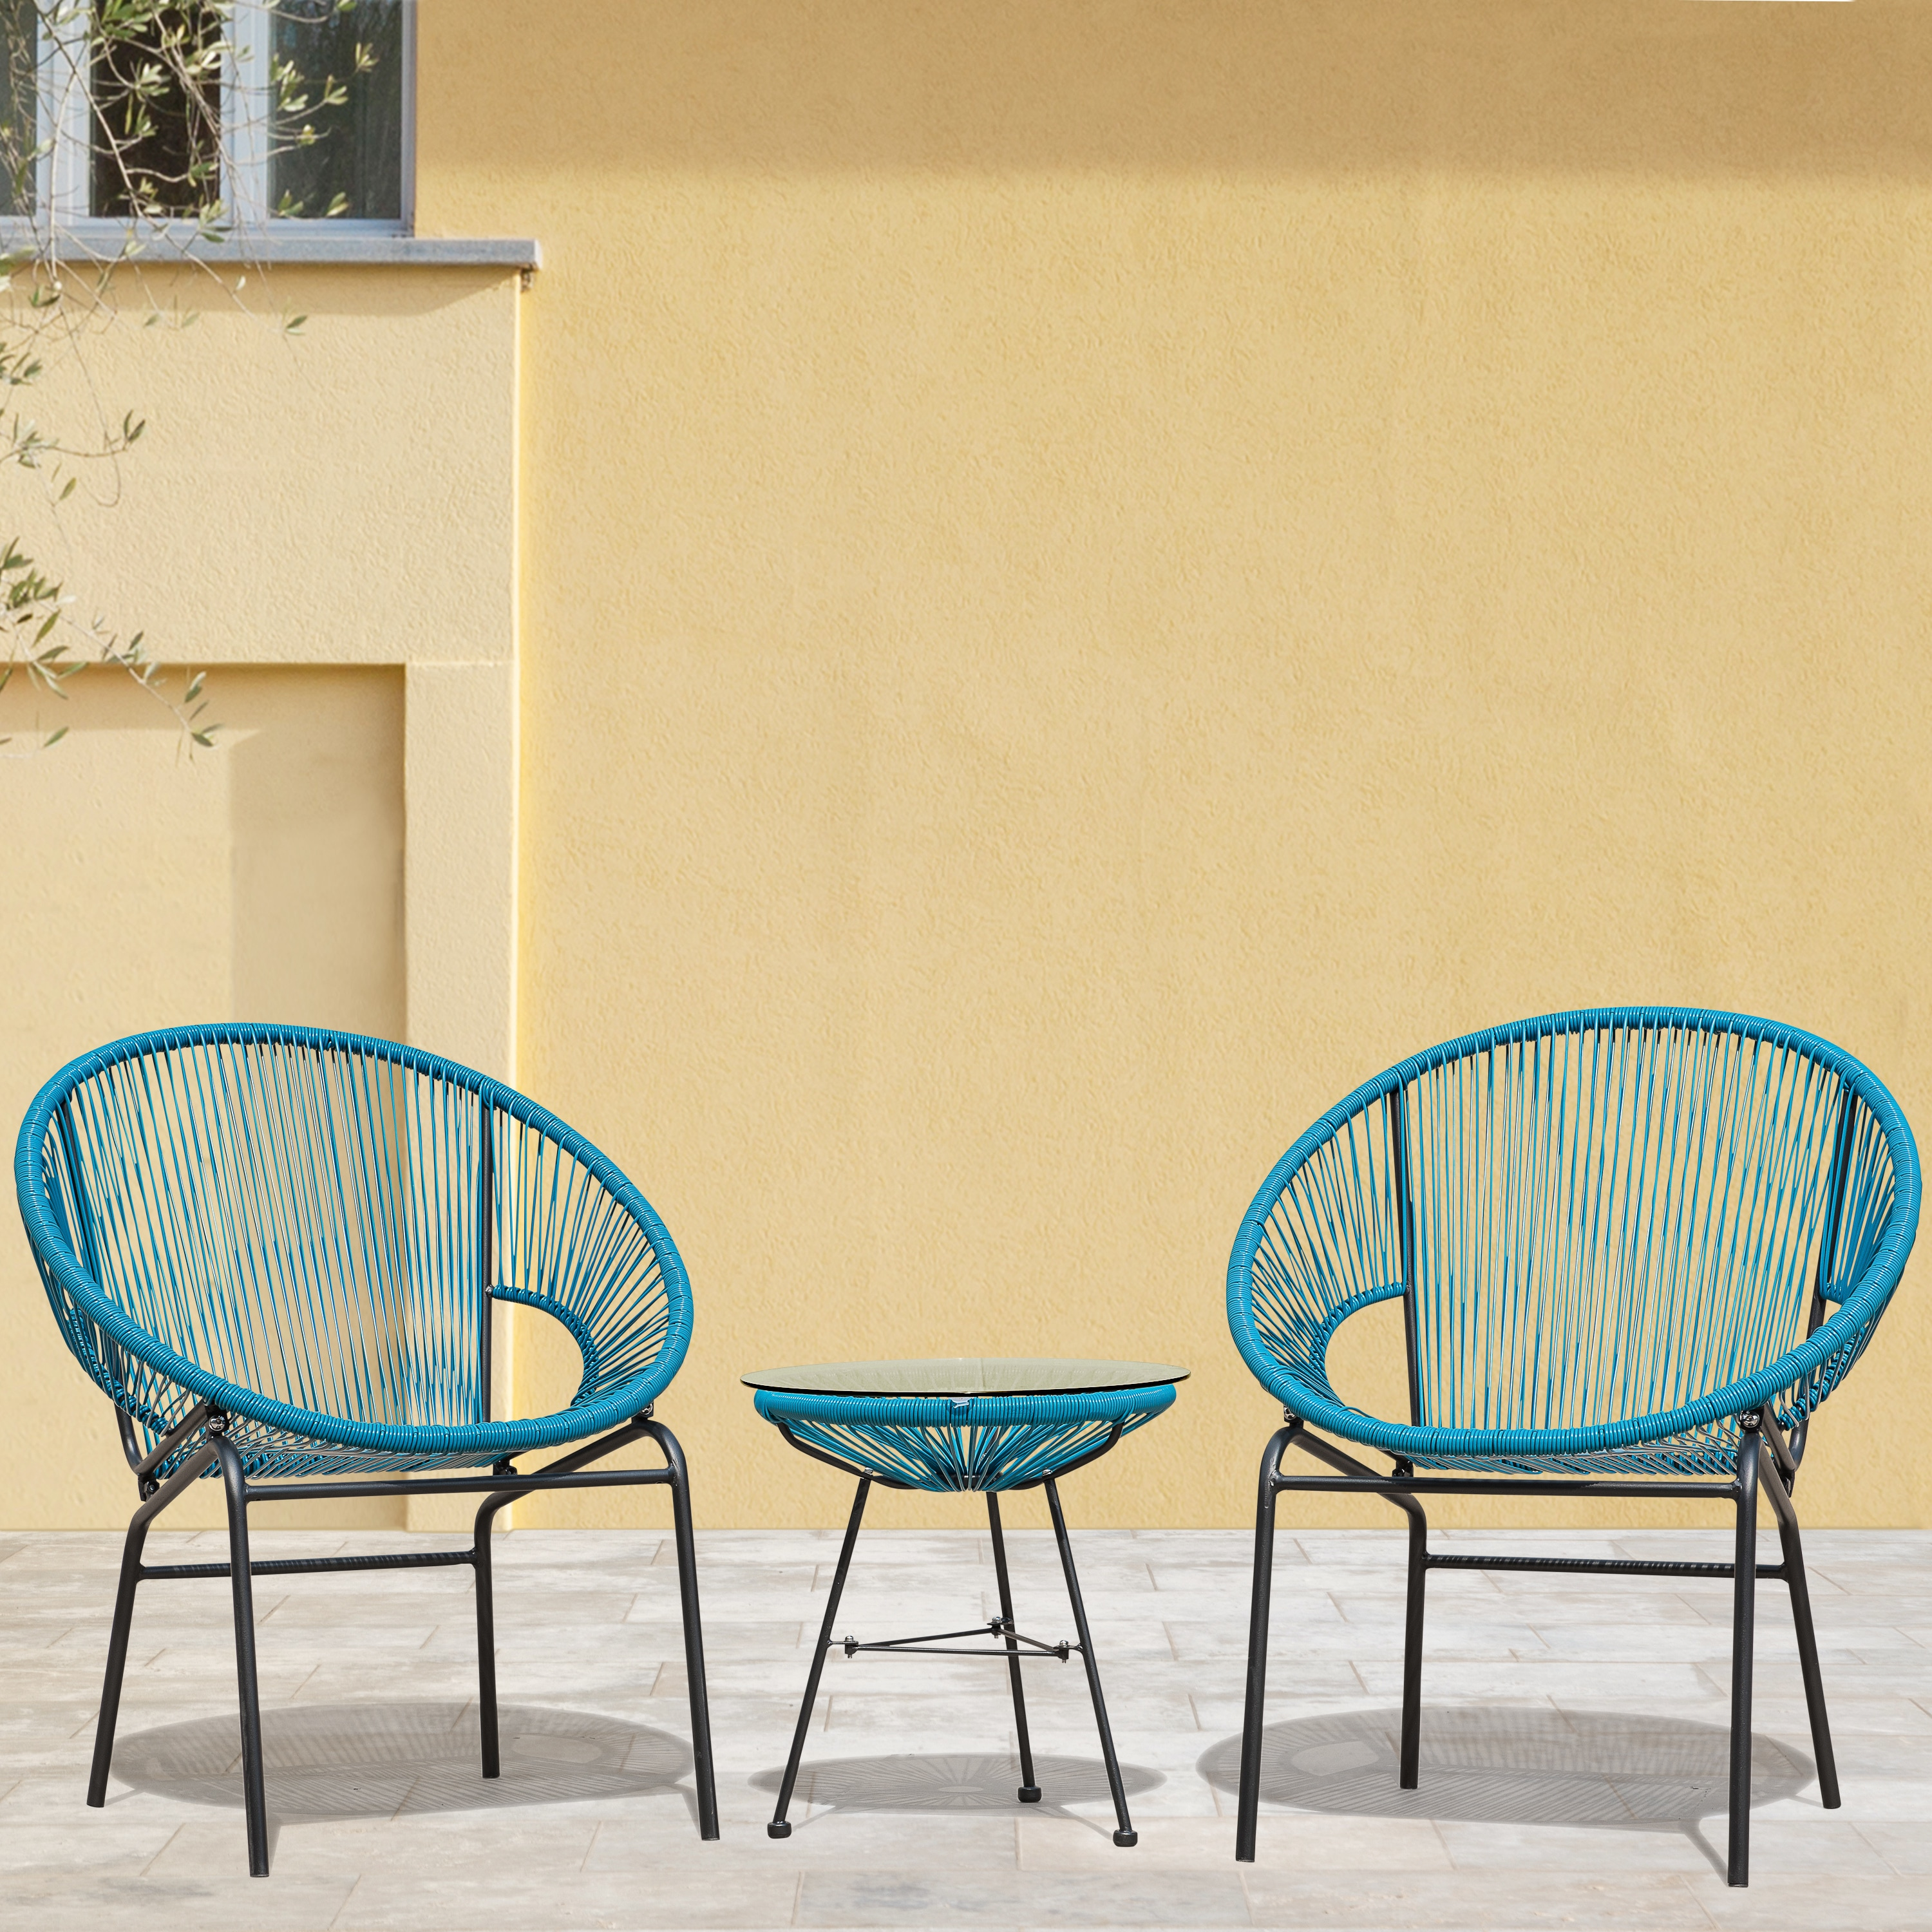 Woven metal furniture Bench Shop Corvus Sarcelles Woven Wicker Patio Chairs set Of 2 On Sale Free Shipping Today Overstockcom 17805619 Overstock Shop Corvus Sarcelles Woven Wicker Patio Chairs set Of 2 On Sale